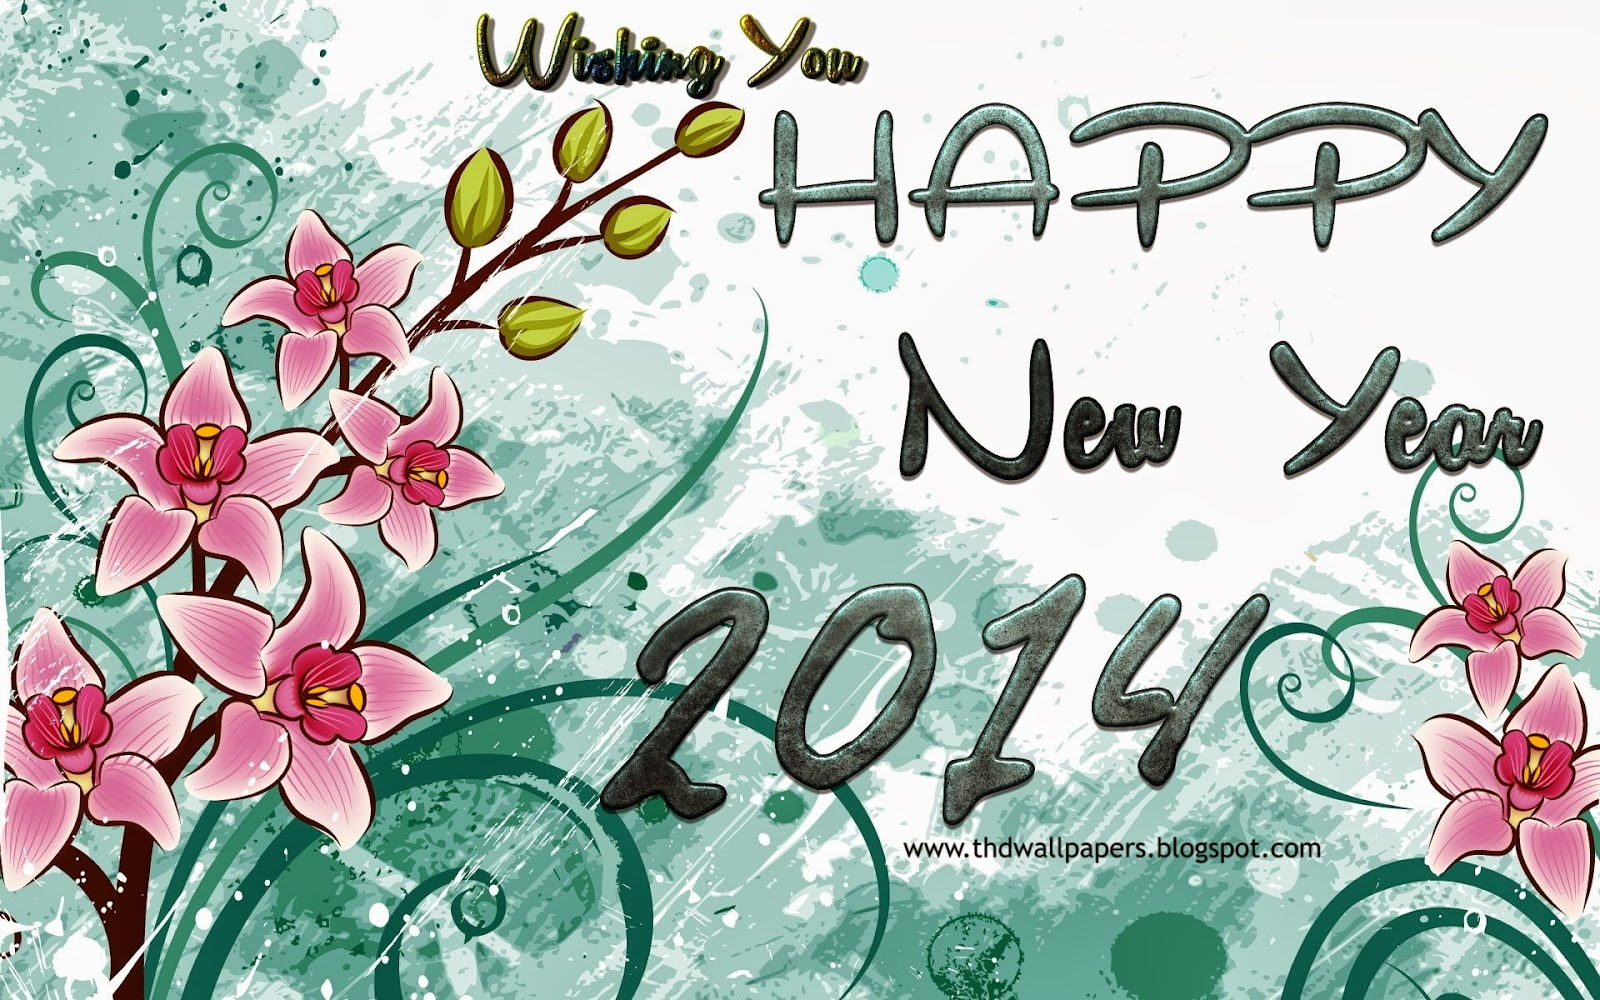 New Year 2014 Wishes Wallpapers For Free Download 2014 Happy New Year.6 Free New Year Cards For Download 2014